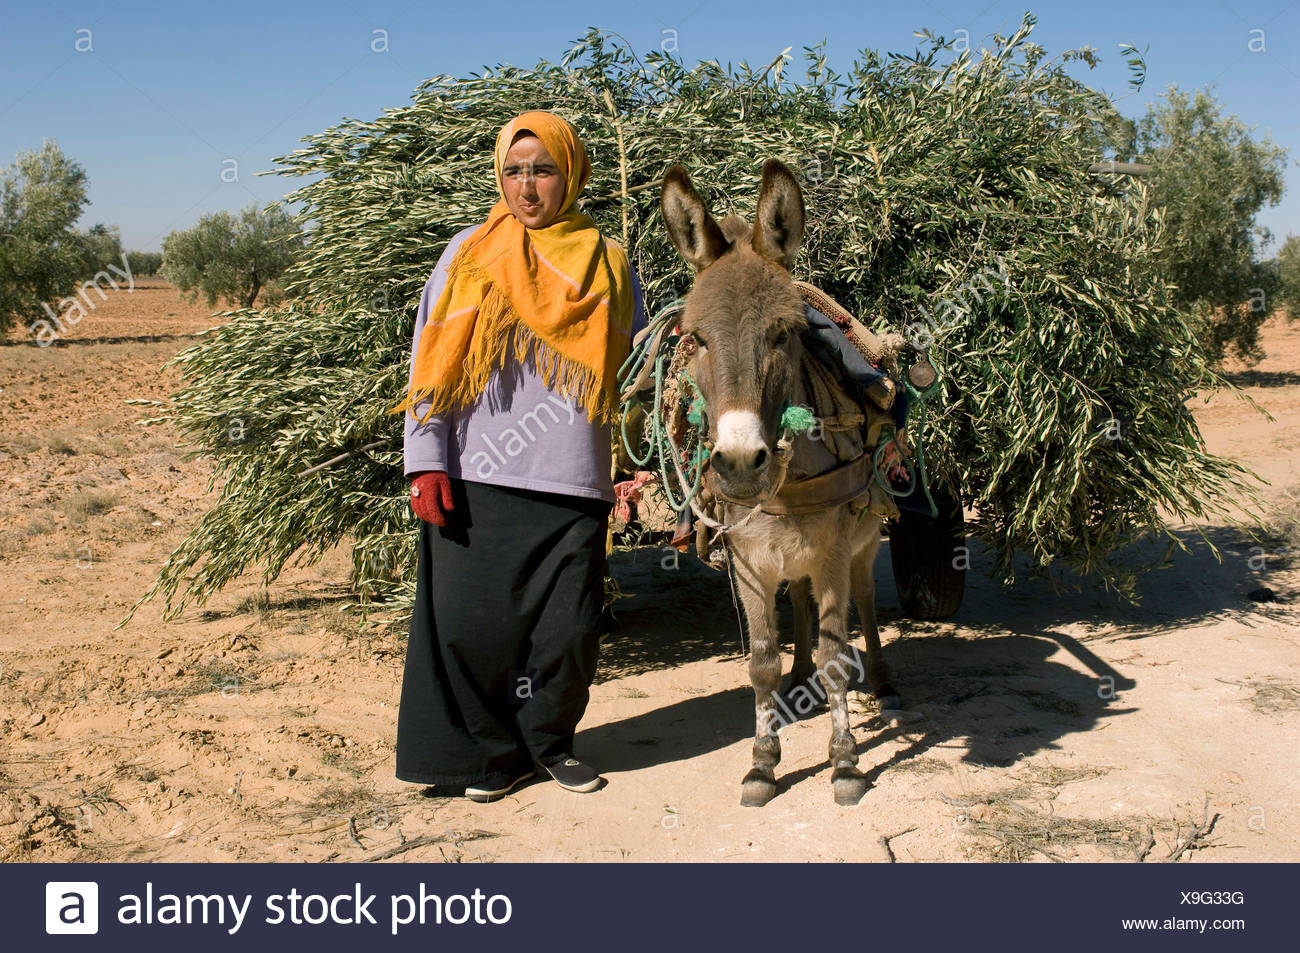 woman with scarf and donkey, heavily loaded with olive tree twigs, Libya - Stock Image